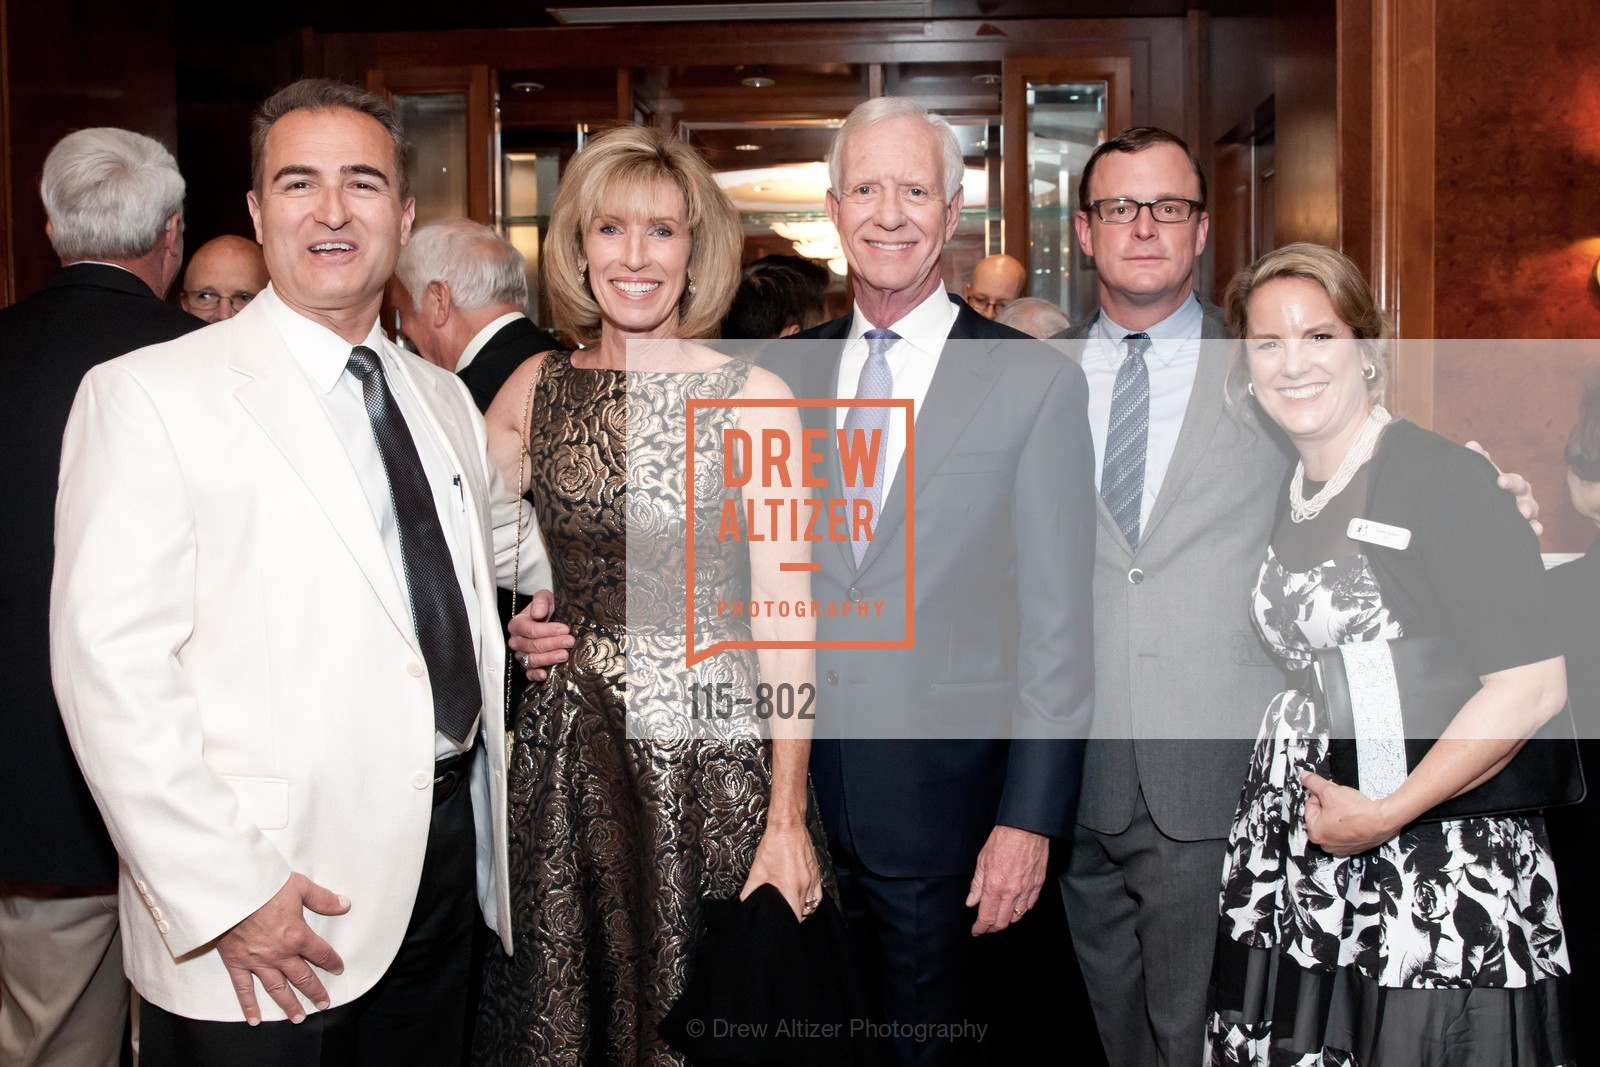 George Papadoyannis, Lorrie Sullenberger, Sully Sullenberger, Dawn Kruger, Photo #115-802